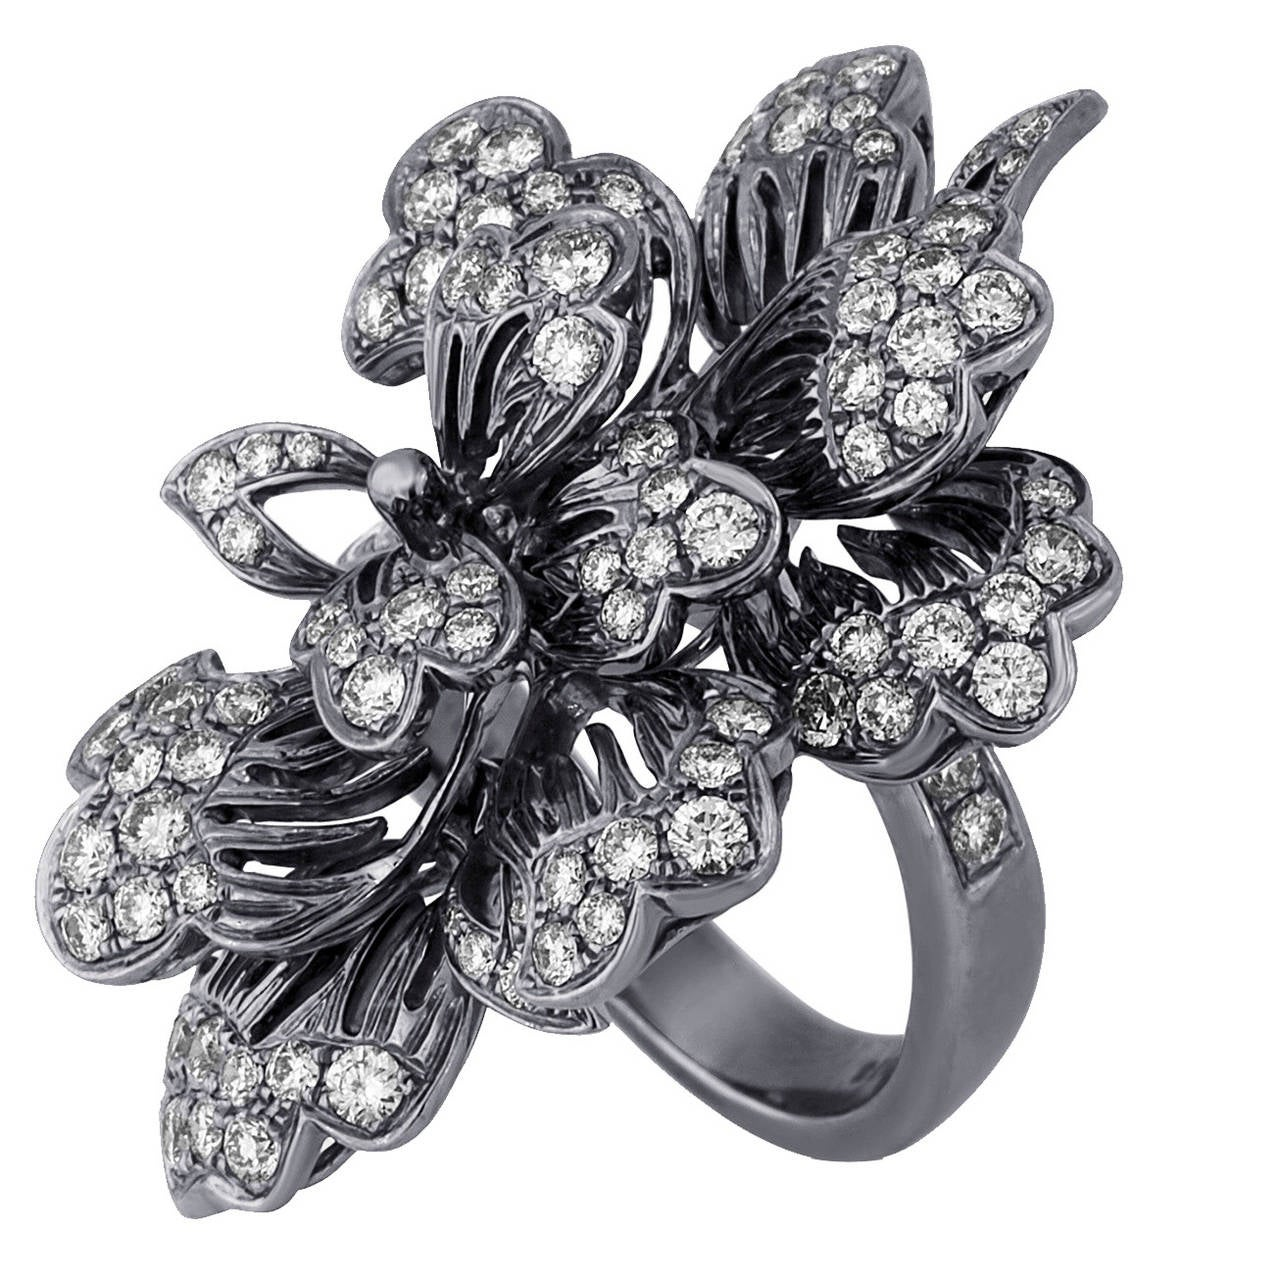 Dickson Yewn Glorious Peony Collection 2.50 Carats Diamond Gold Ring 1